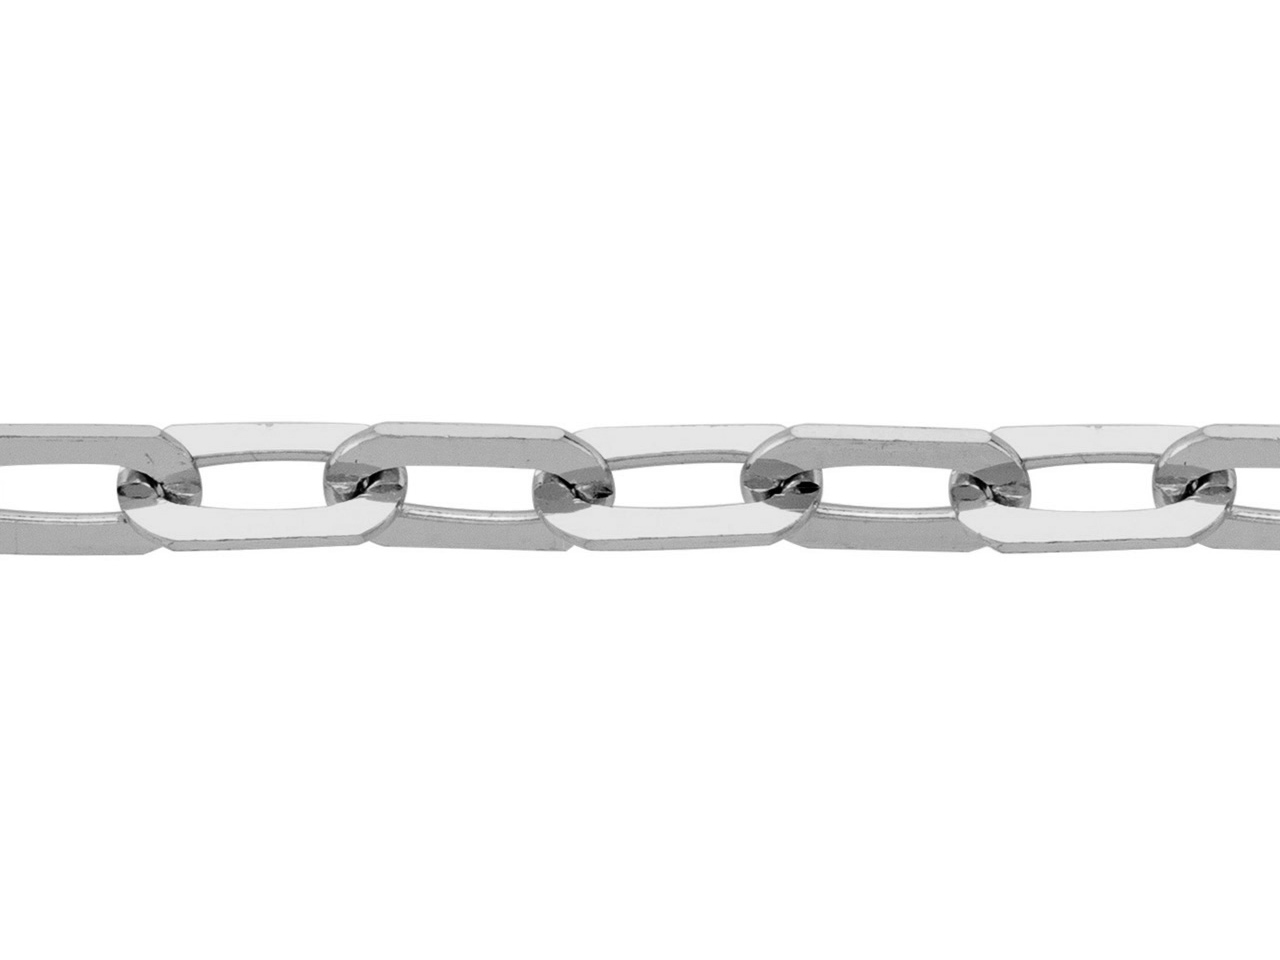 Chaine Maille rectangle, 2,6 mm, Or gris rhodié 18k. Réf. 02016